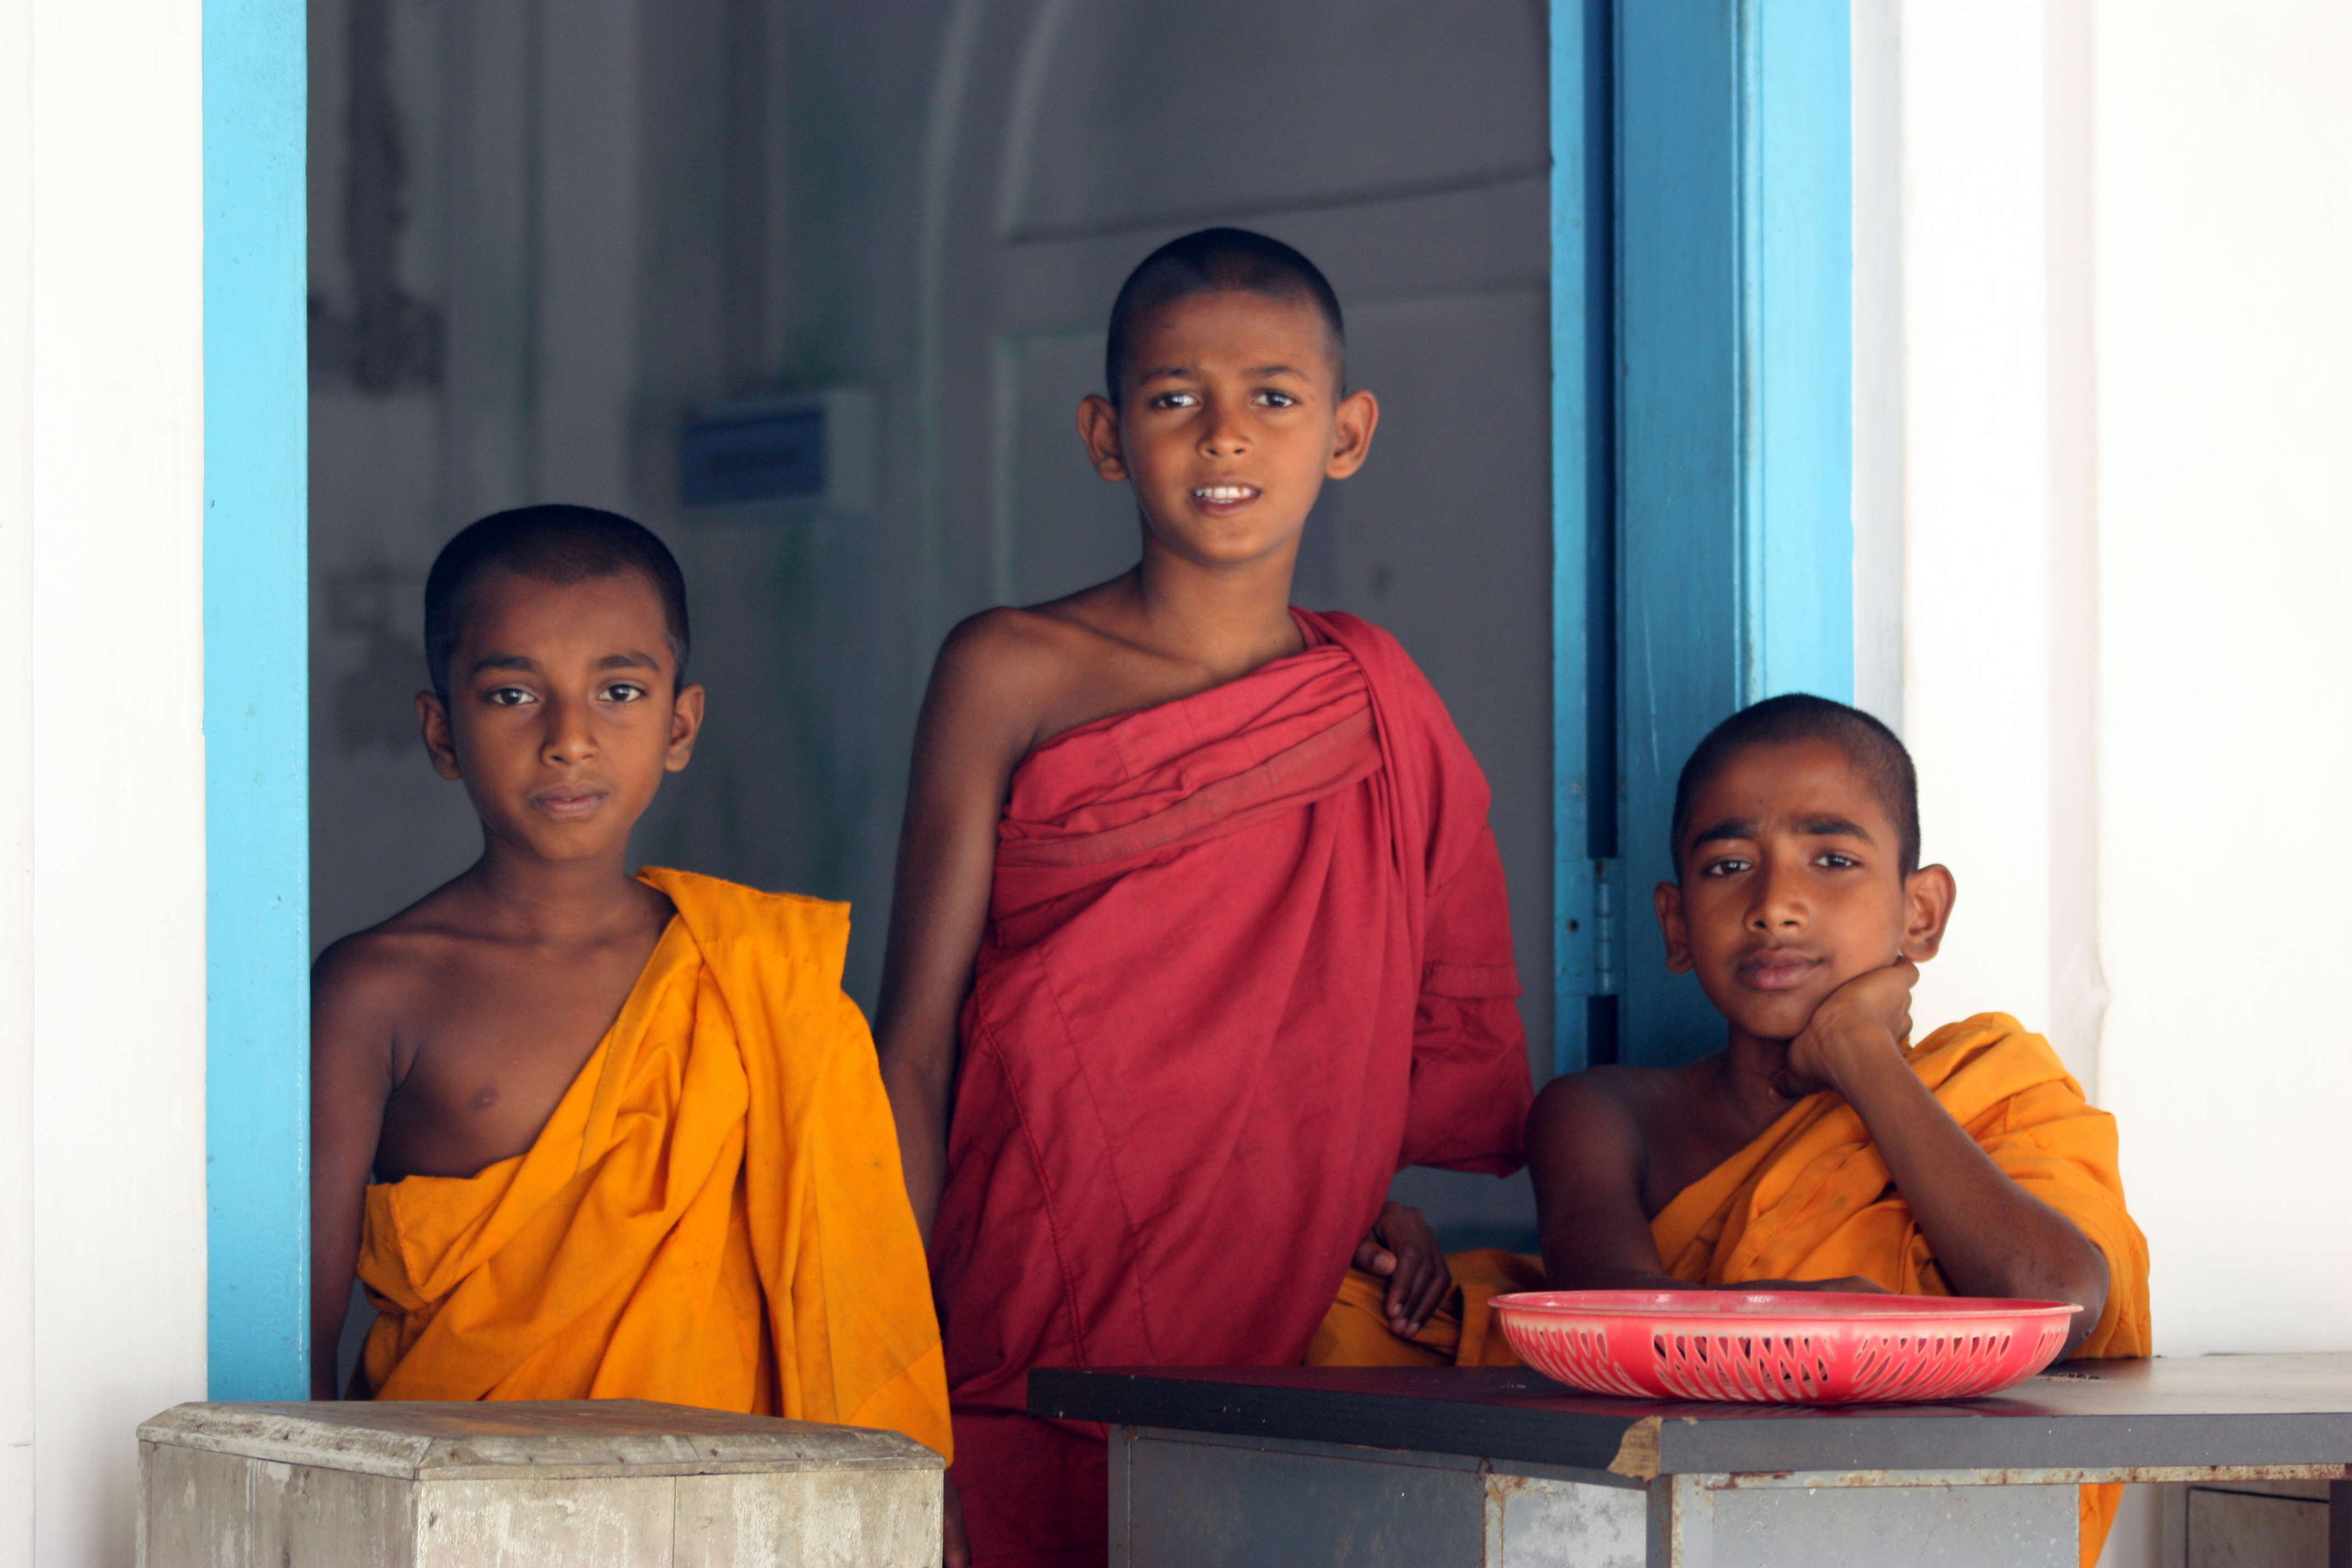 Three temple boys